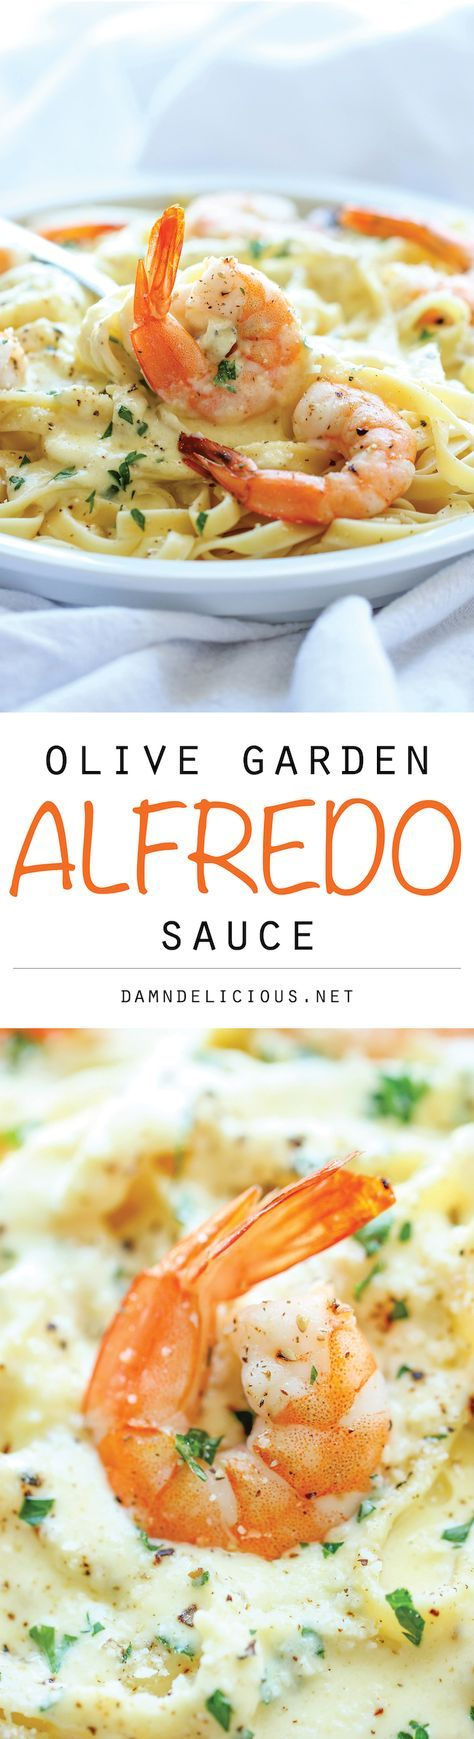 Olive Garden Alfredo Sauce - An easy, no-fuss dish you can make right at home. It's also cheaper, healthier and quicker than ordering out!